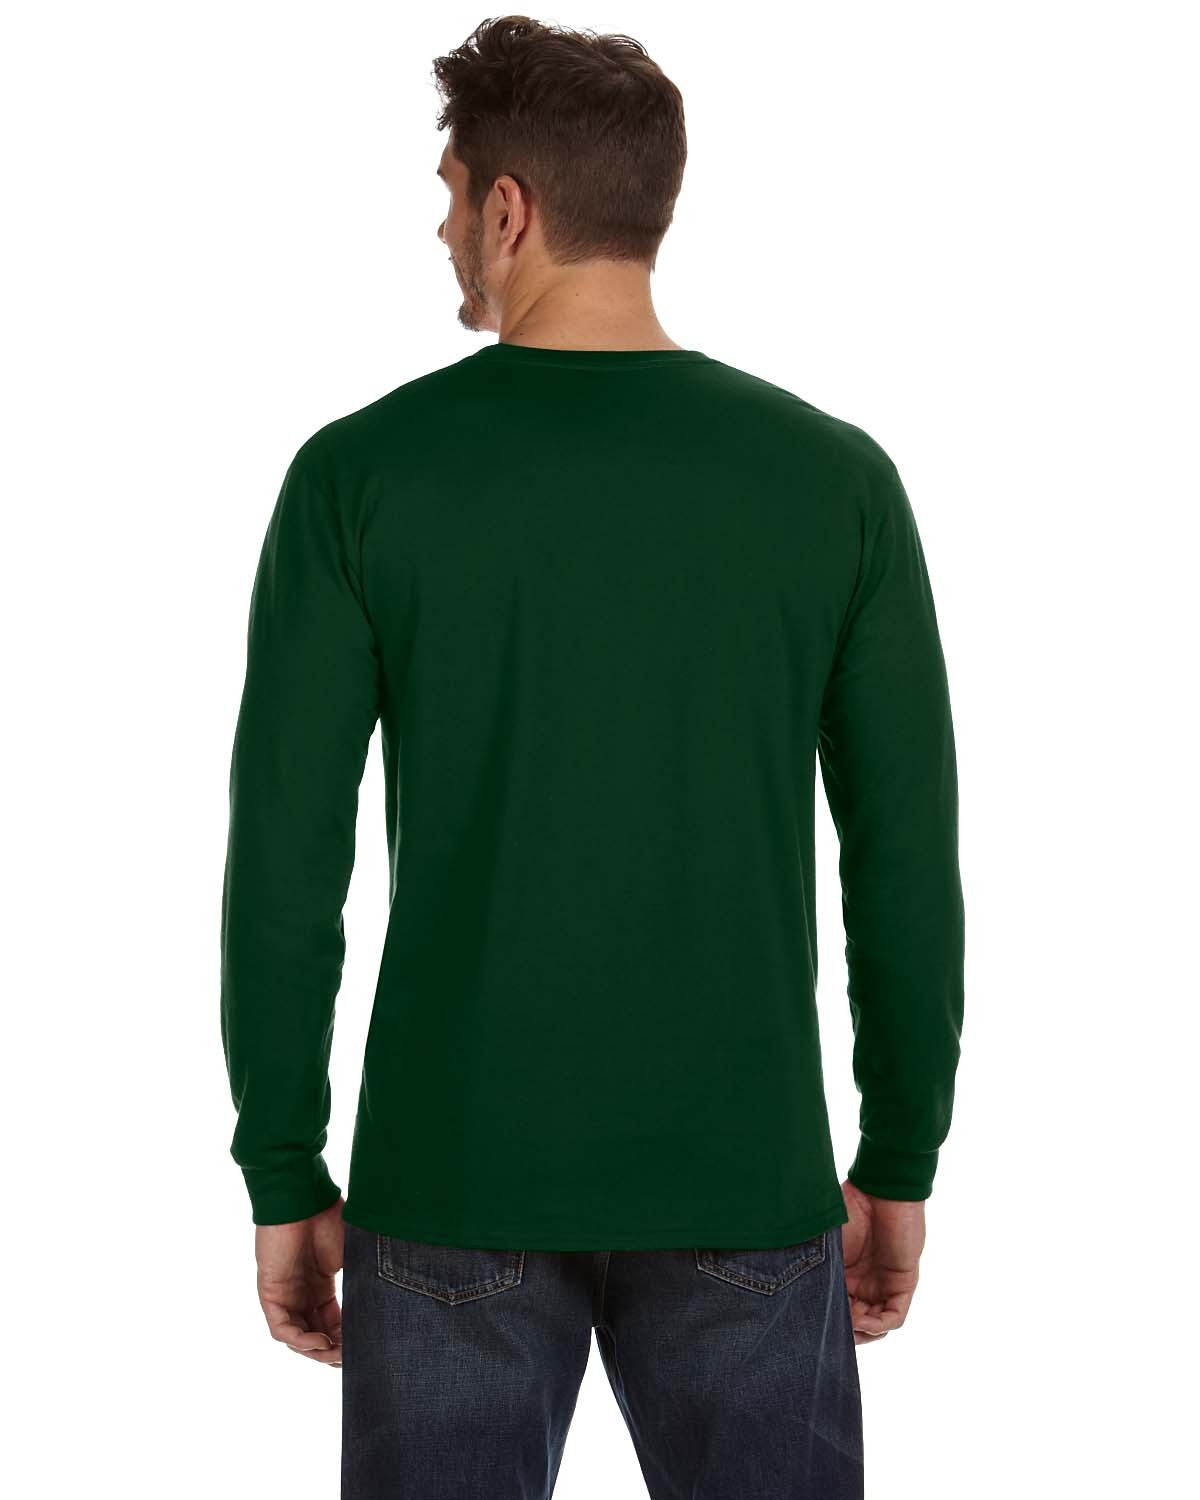 784AN Anvil FOREST GREEN